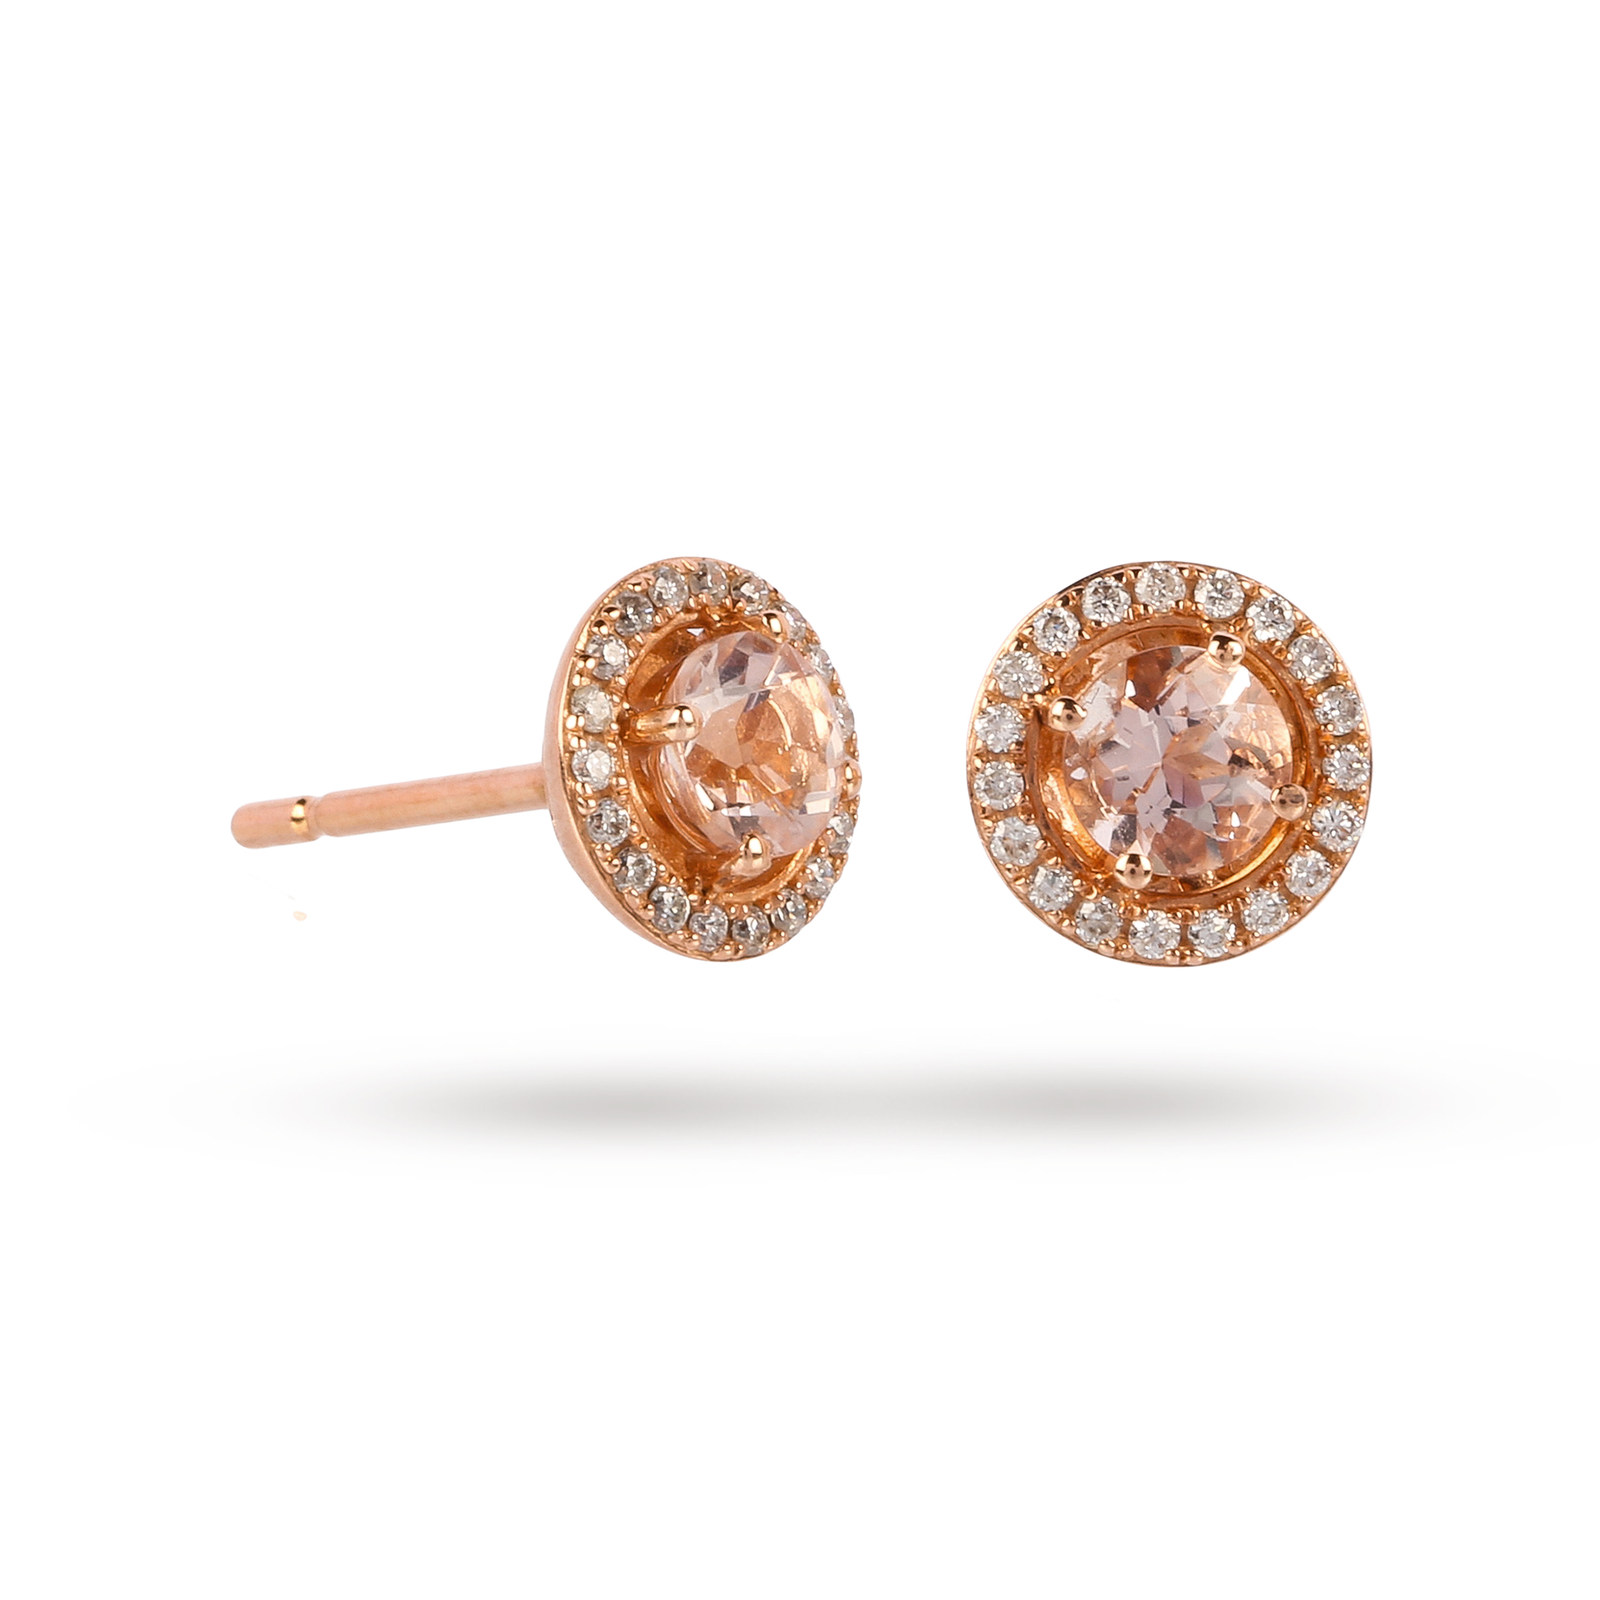 mrgnt gemstone diamonds white earrings diamond with stud accents std gold products collections dmnd morganite mandys gem mine rnd cuo je